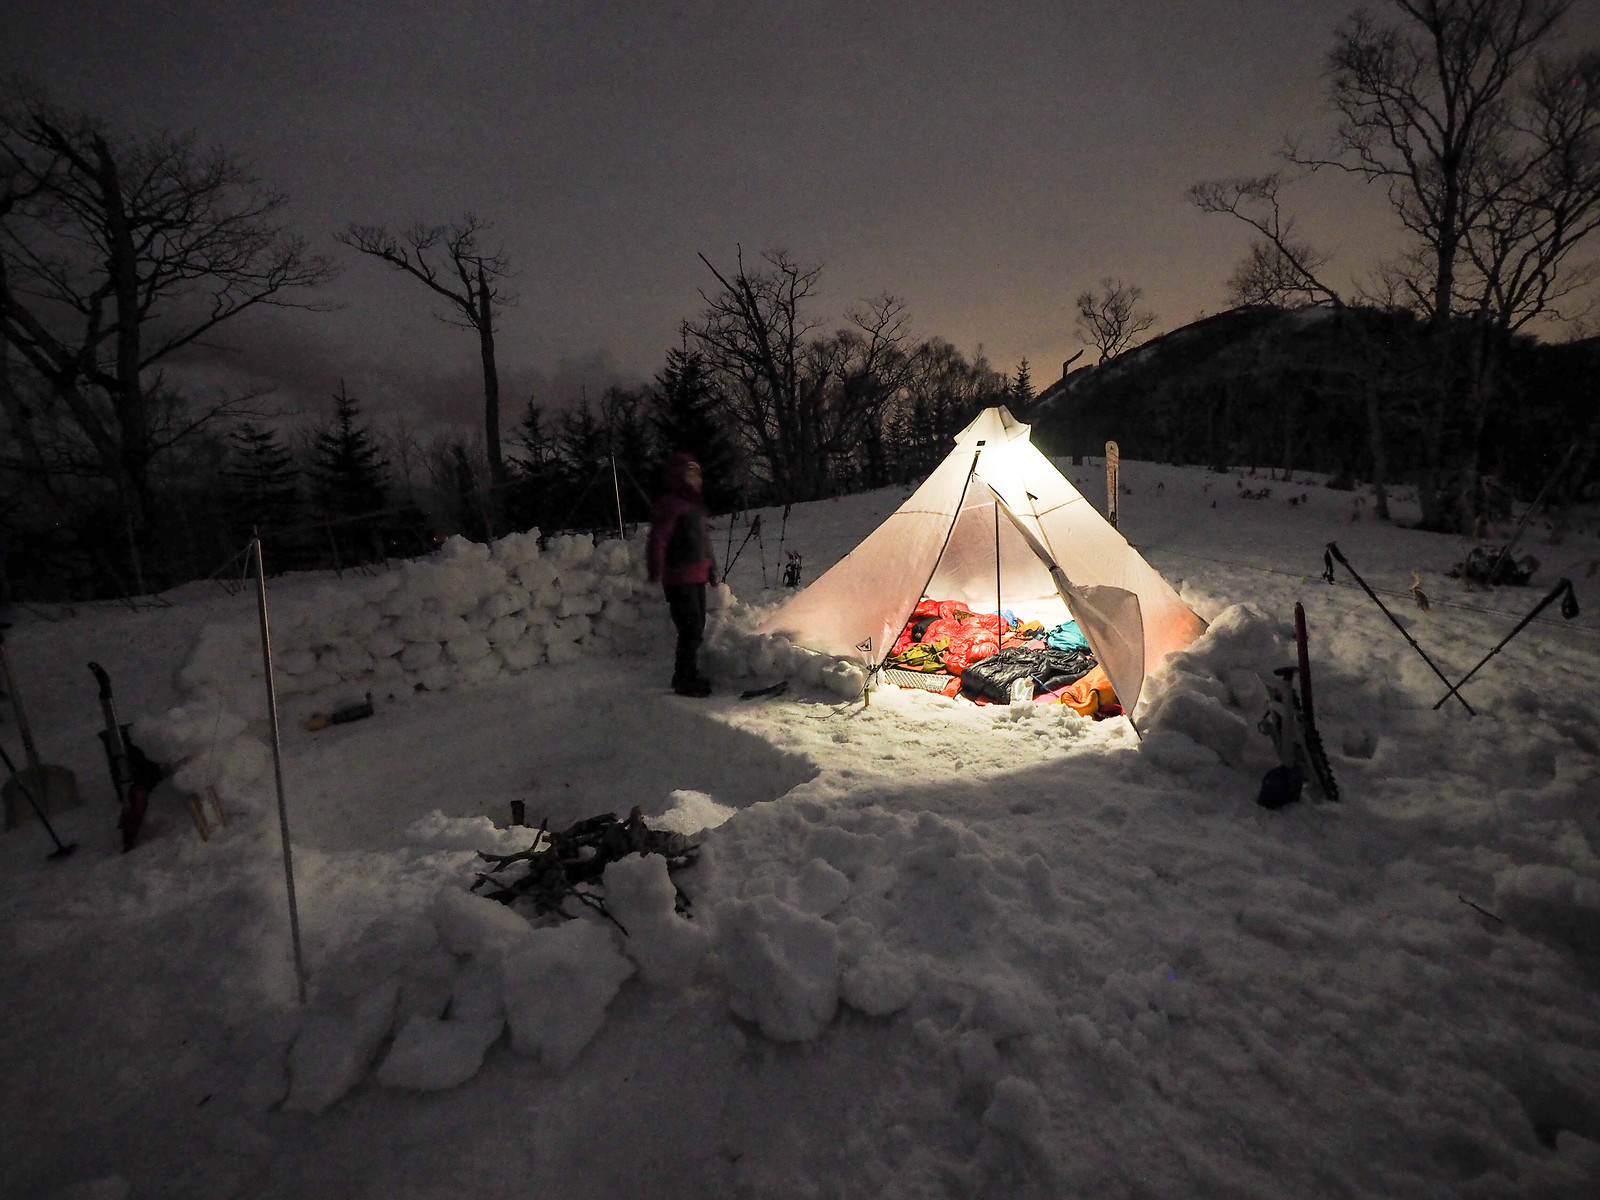 Mt. Ichankoppe ski touring and winter camping (Hokkaido, Japan)